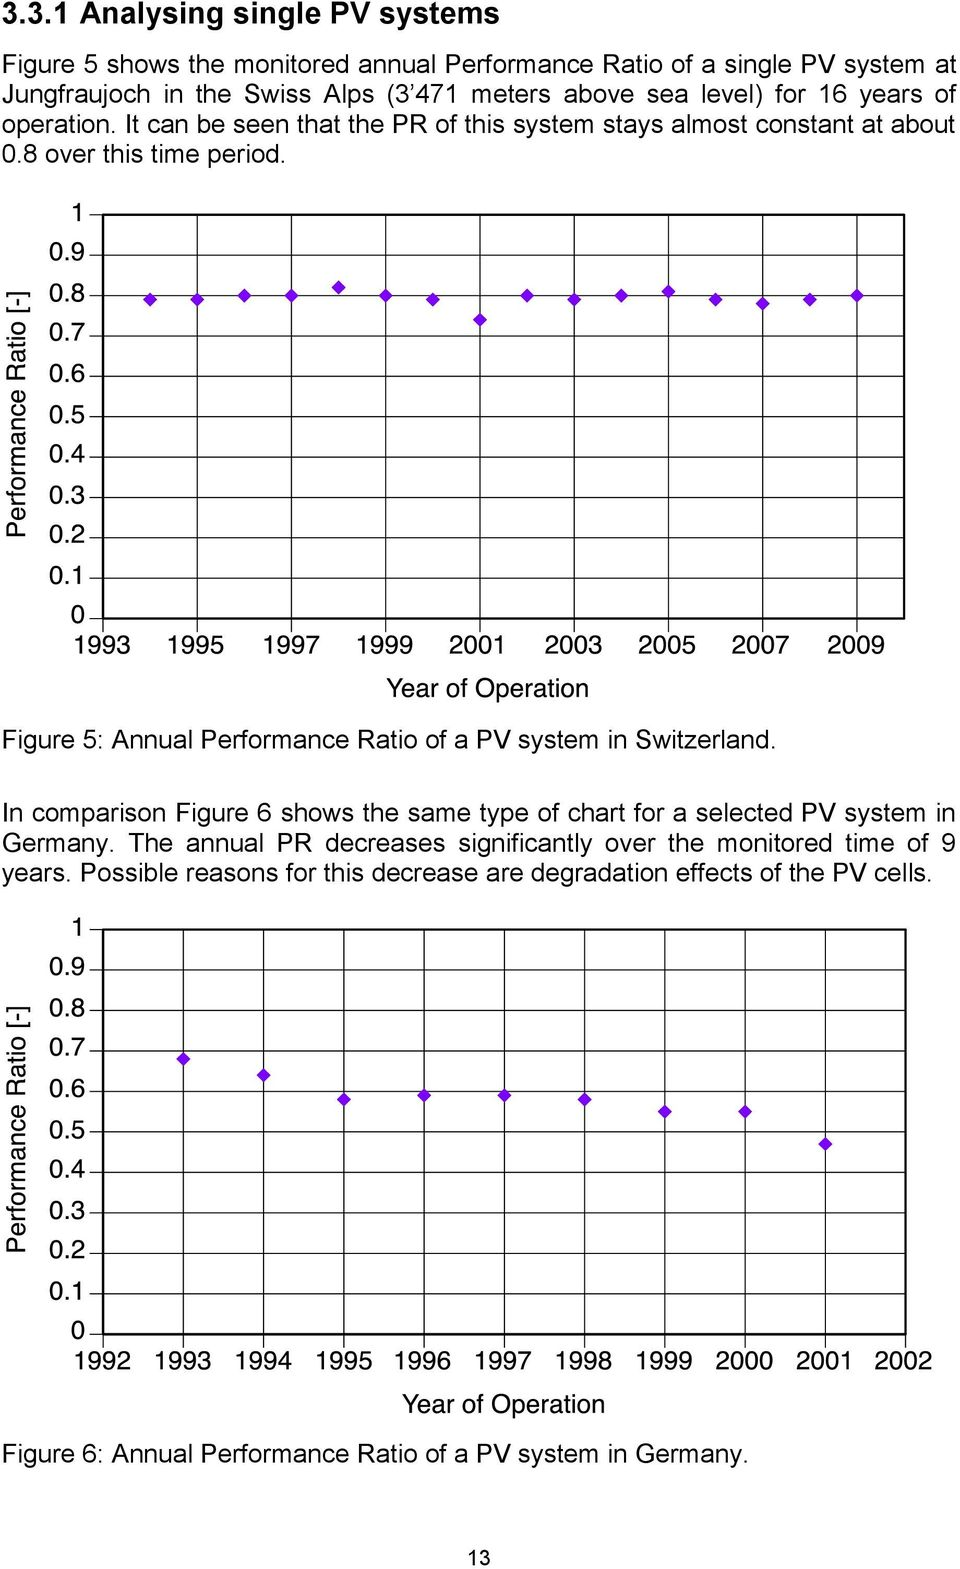 Figure 5: Annual Performance Ratio of a PV system in Switzerland. In comparison Figure 6 shows the same type of chart for a selected PV system in Germany.